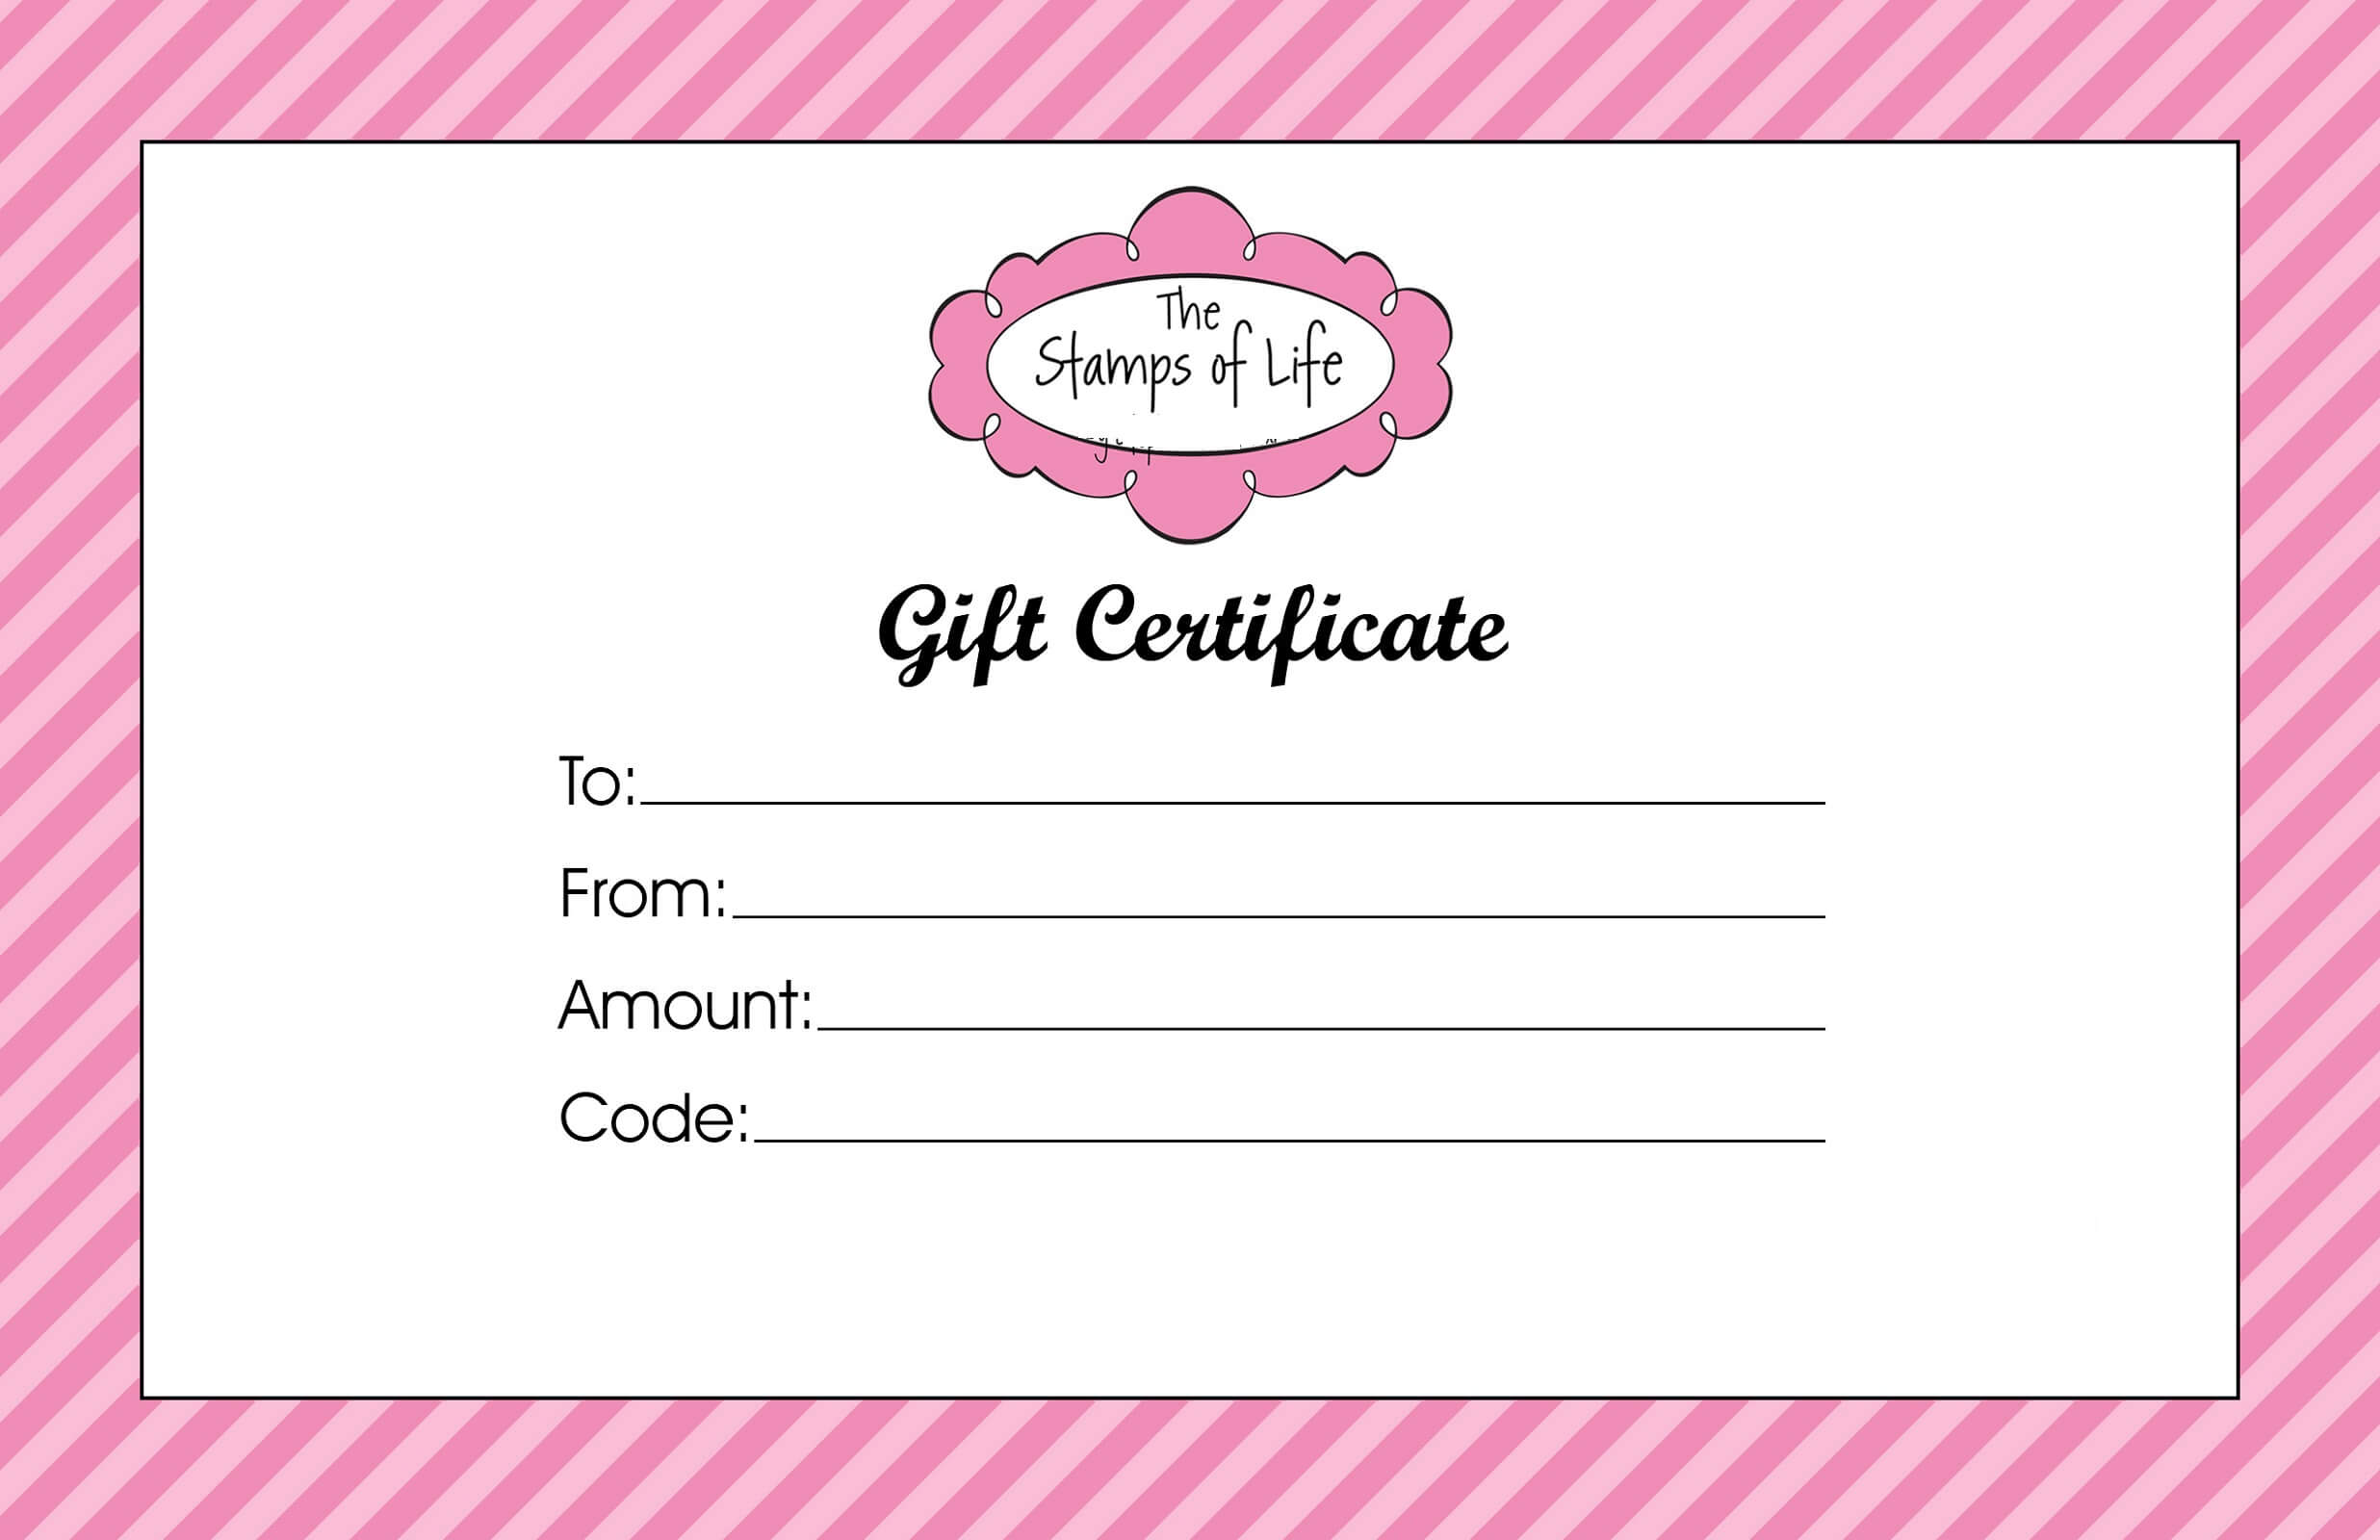 Gift Certificate Templates To Print | Activity Shelter Within Mary Kay Gift Certificate Template